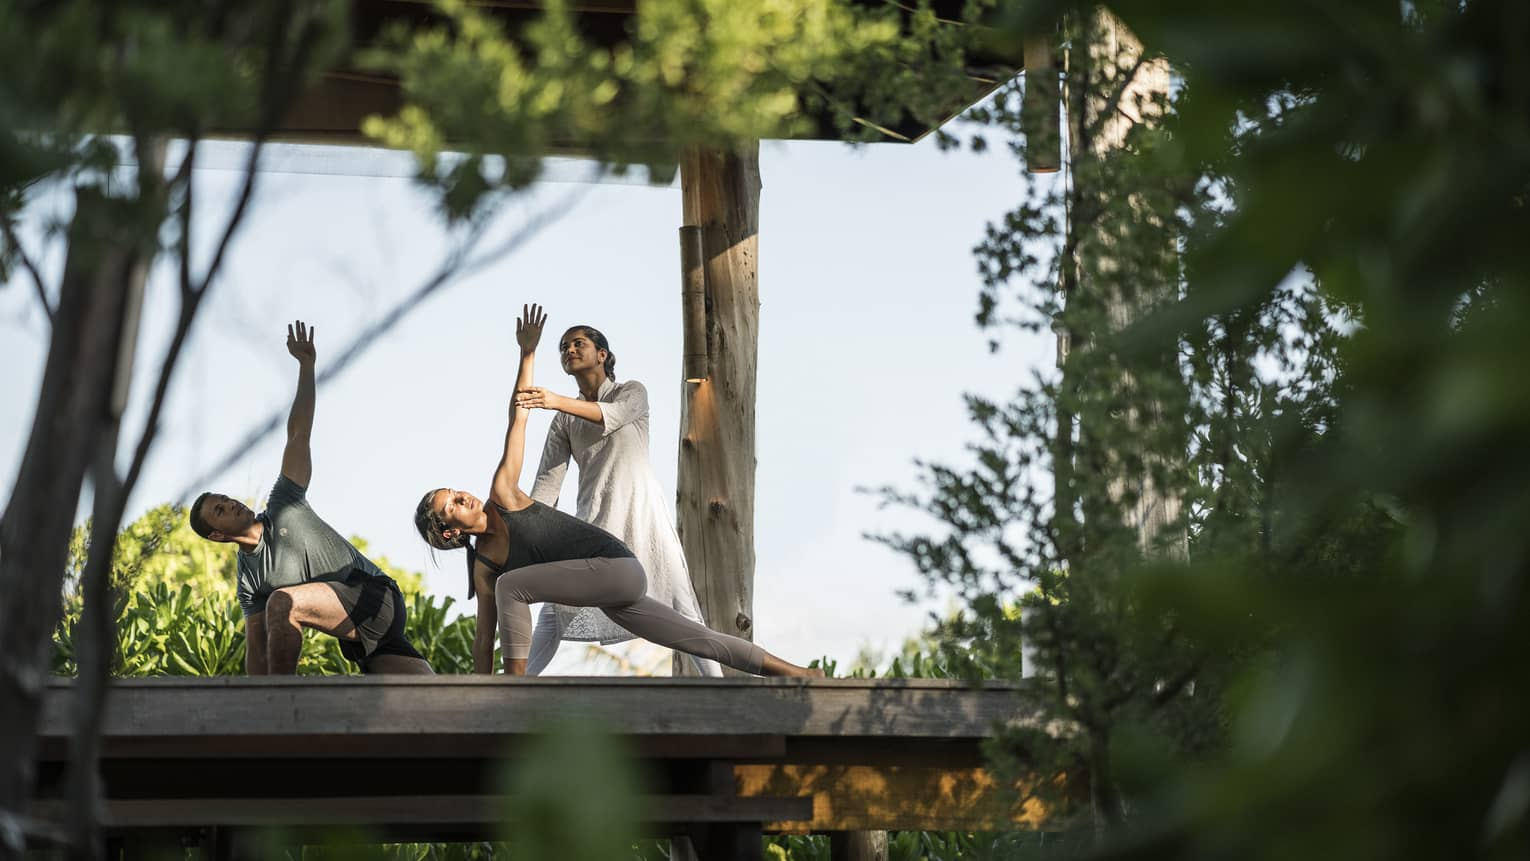 Couple stretching during outdoor yoga class